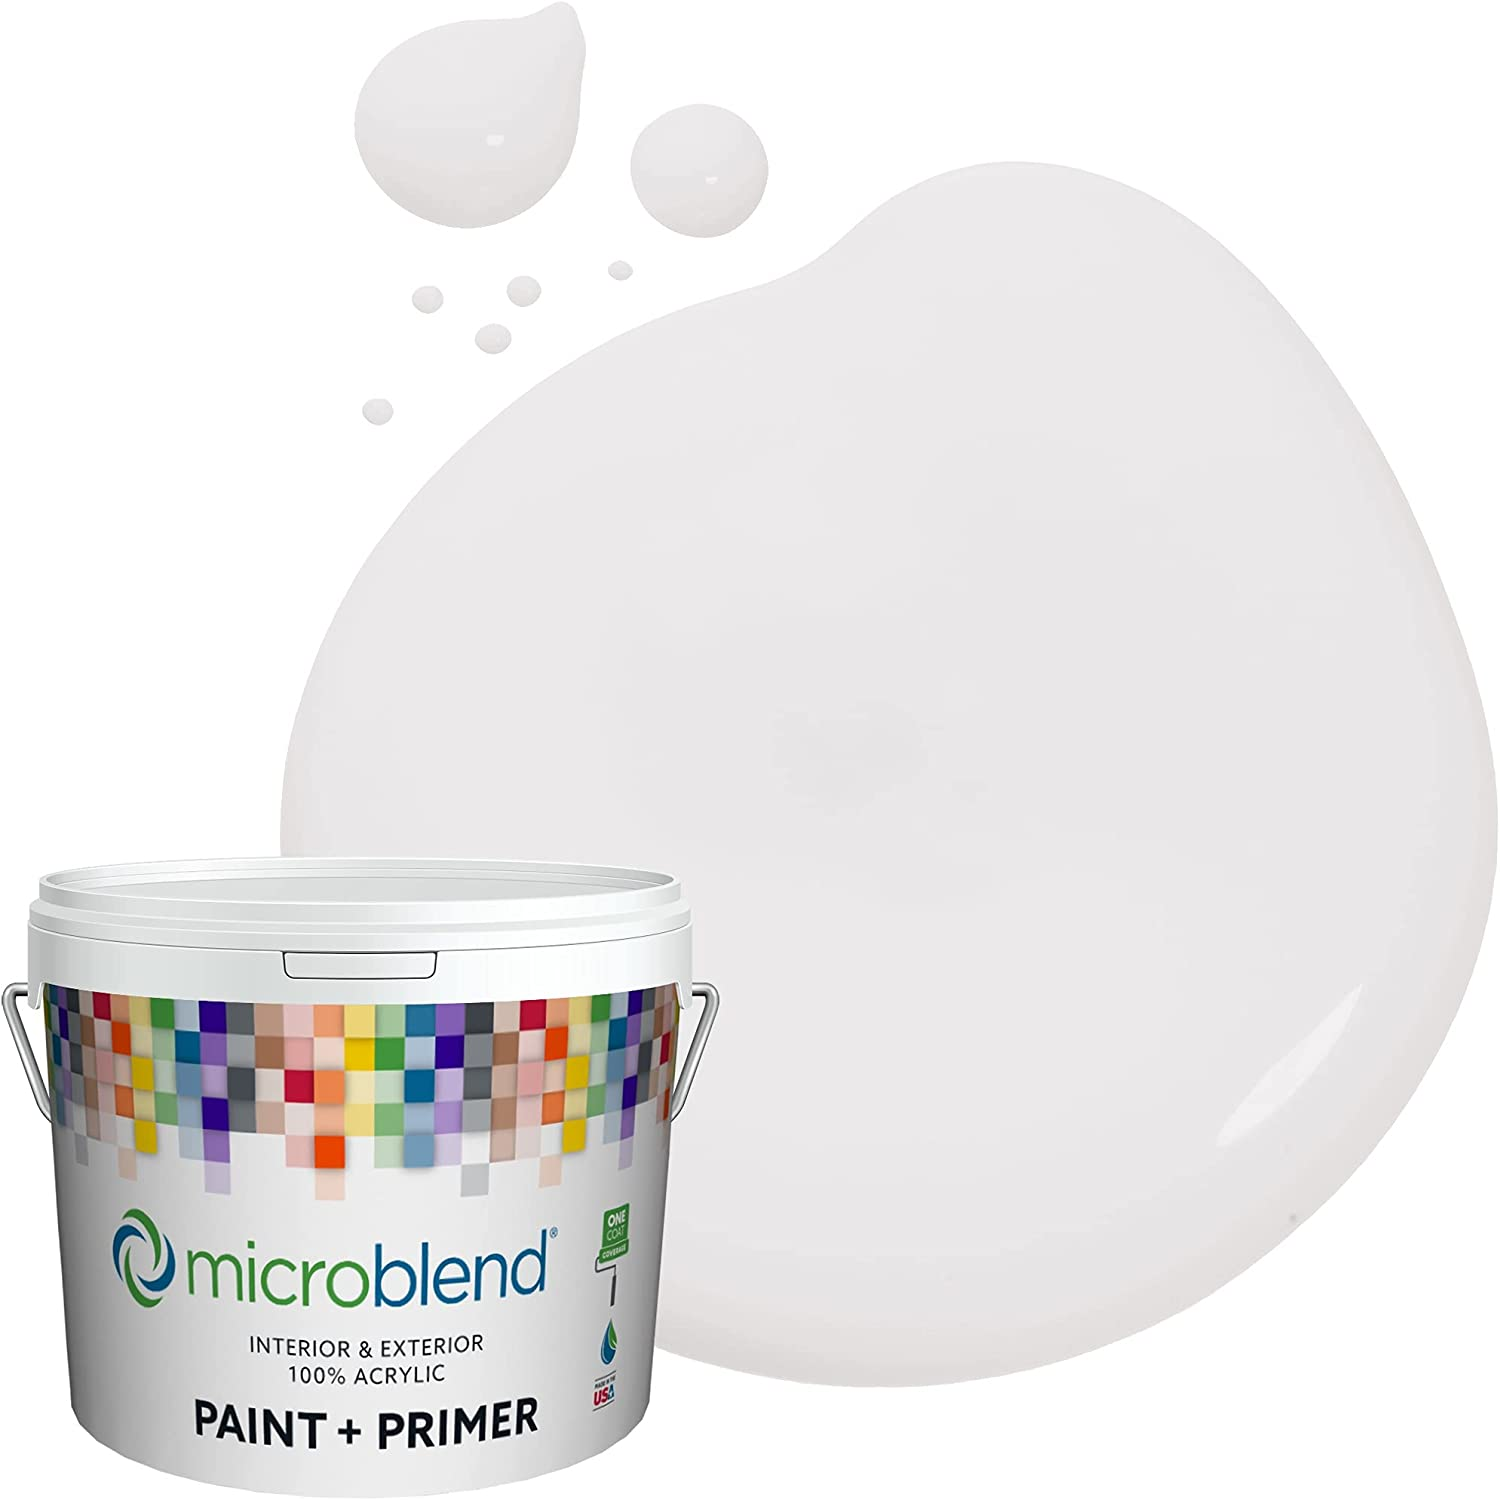 Microblend Exterior Daily bargain sale Paint and Primer Purple Almost White - overseas Lav